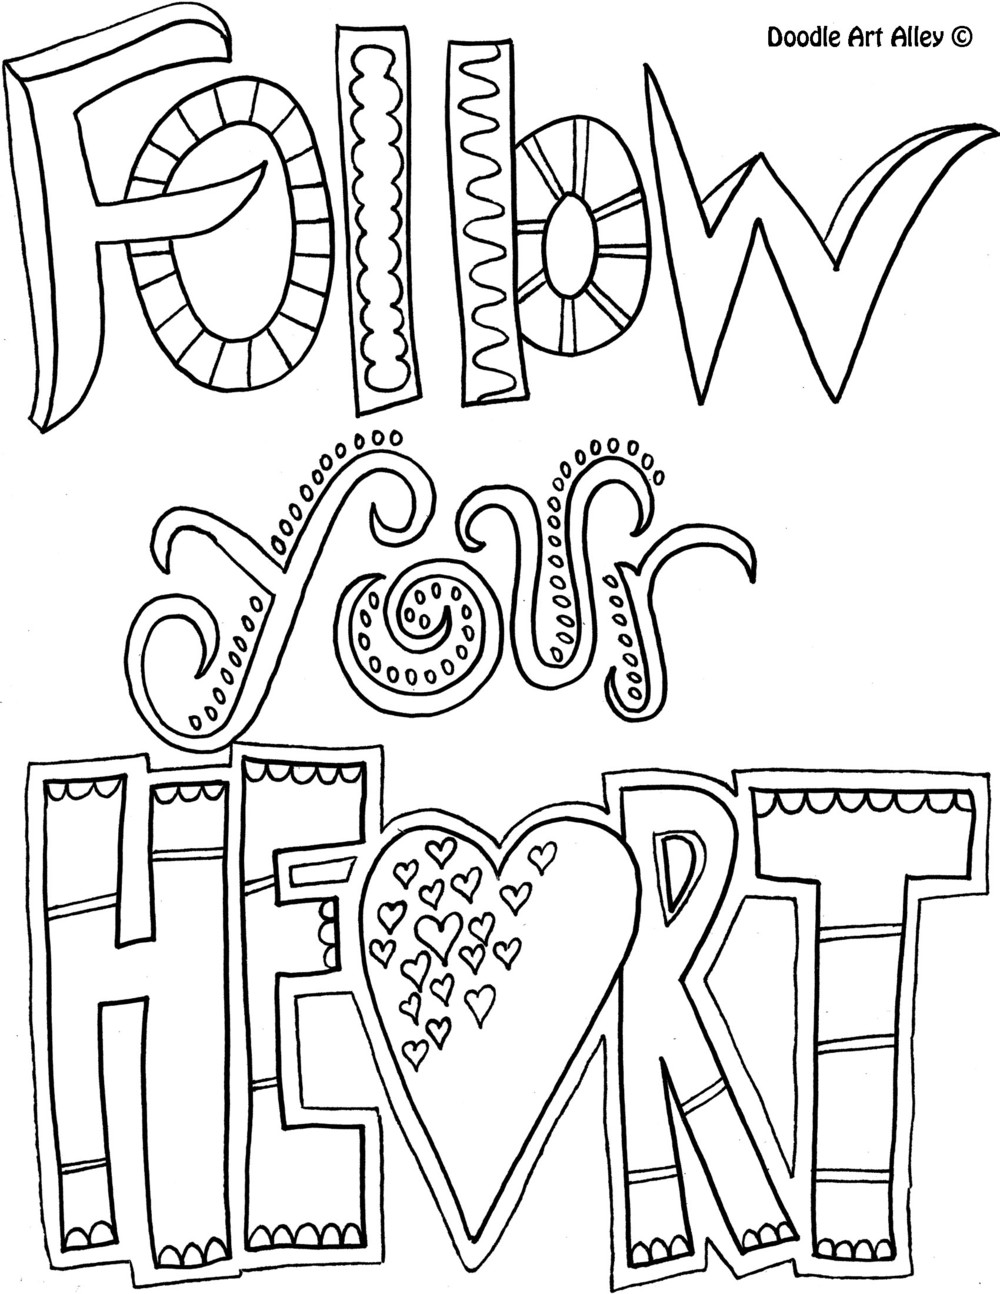 Coloring Pages Quotes : Become a coloring book enthusiast with doodle art alley